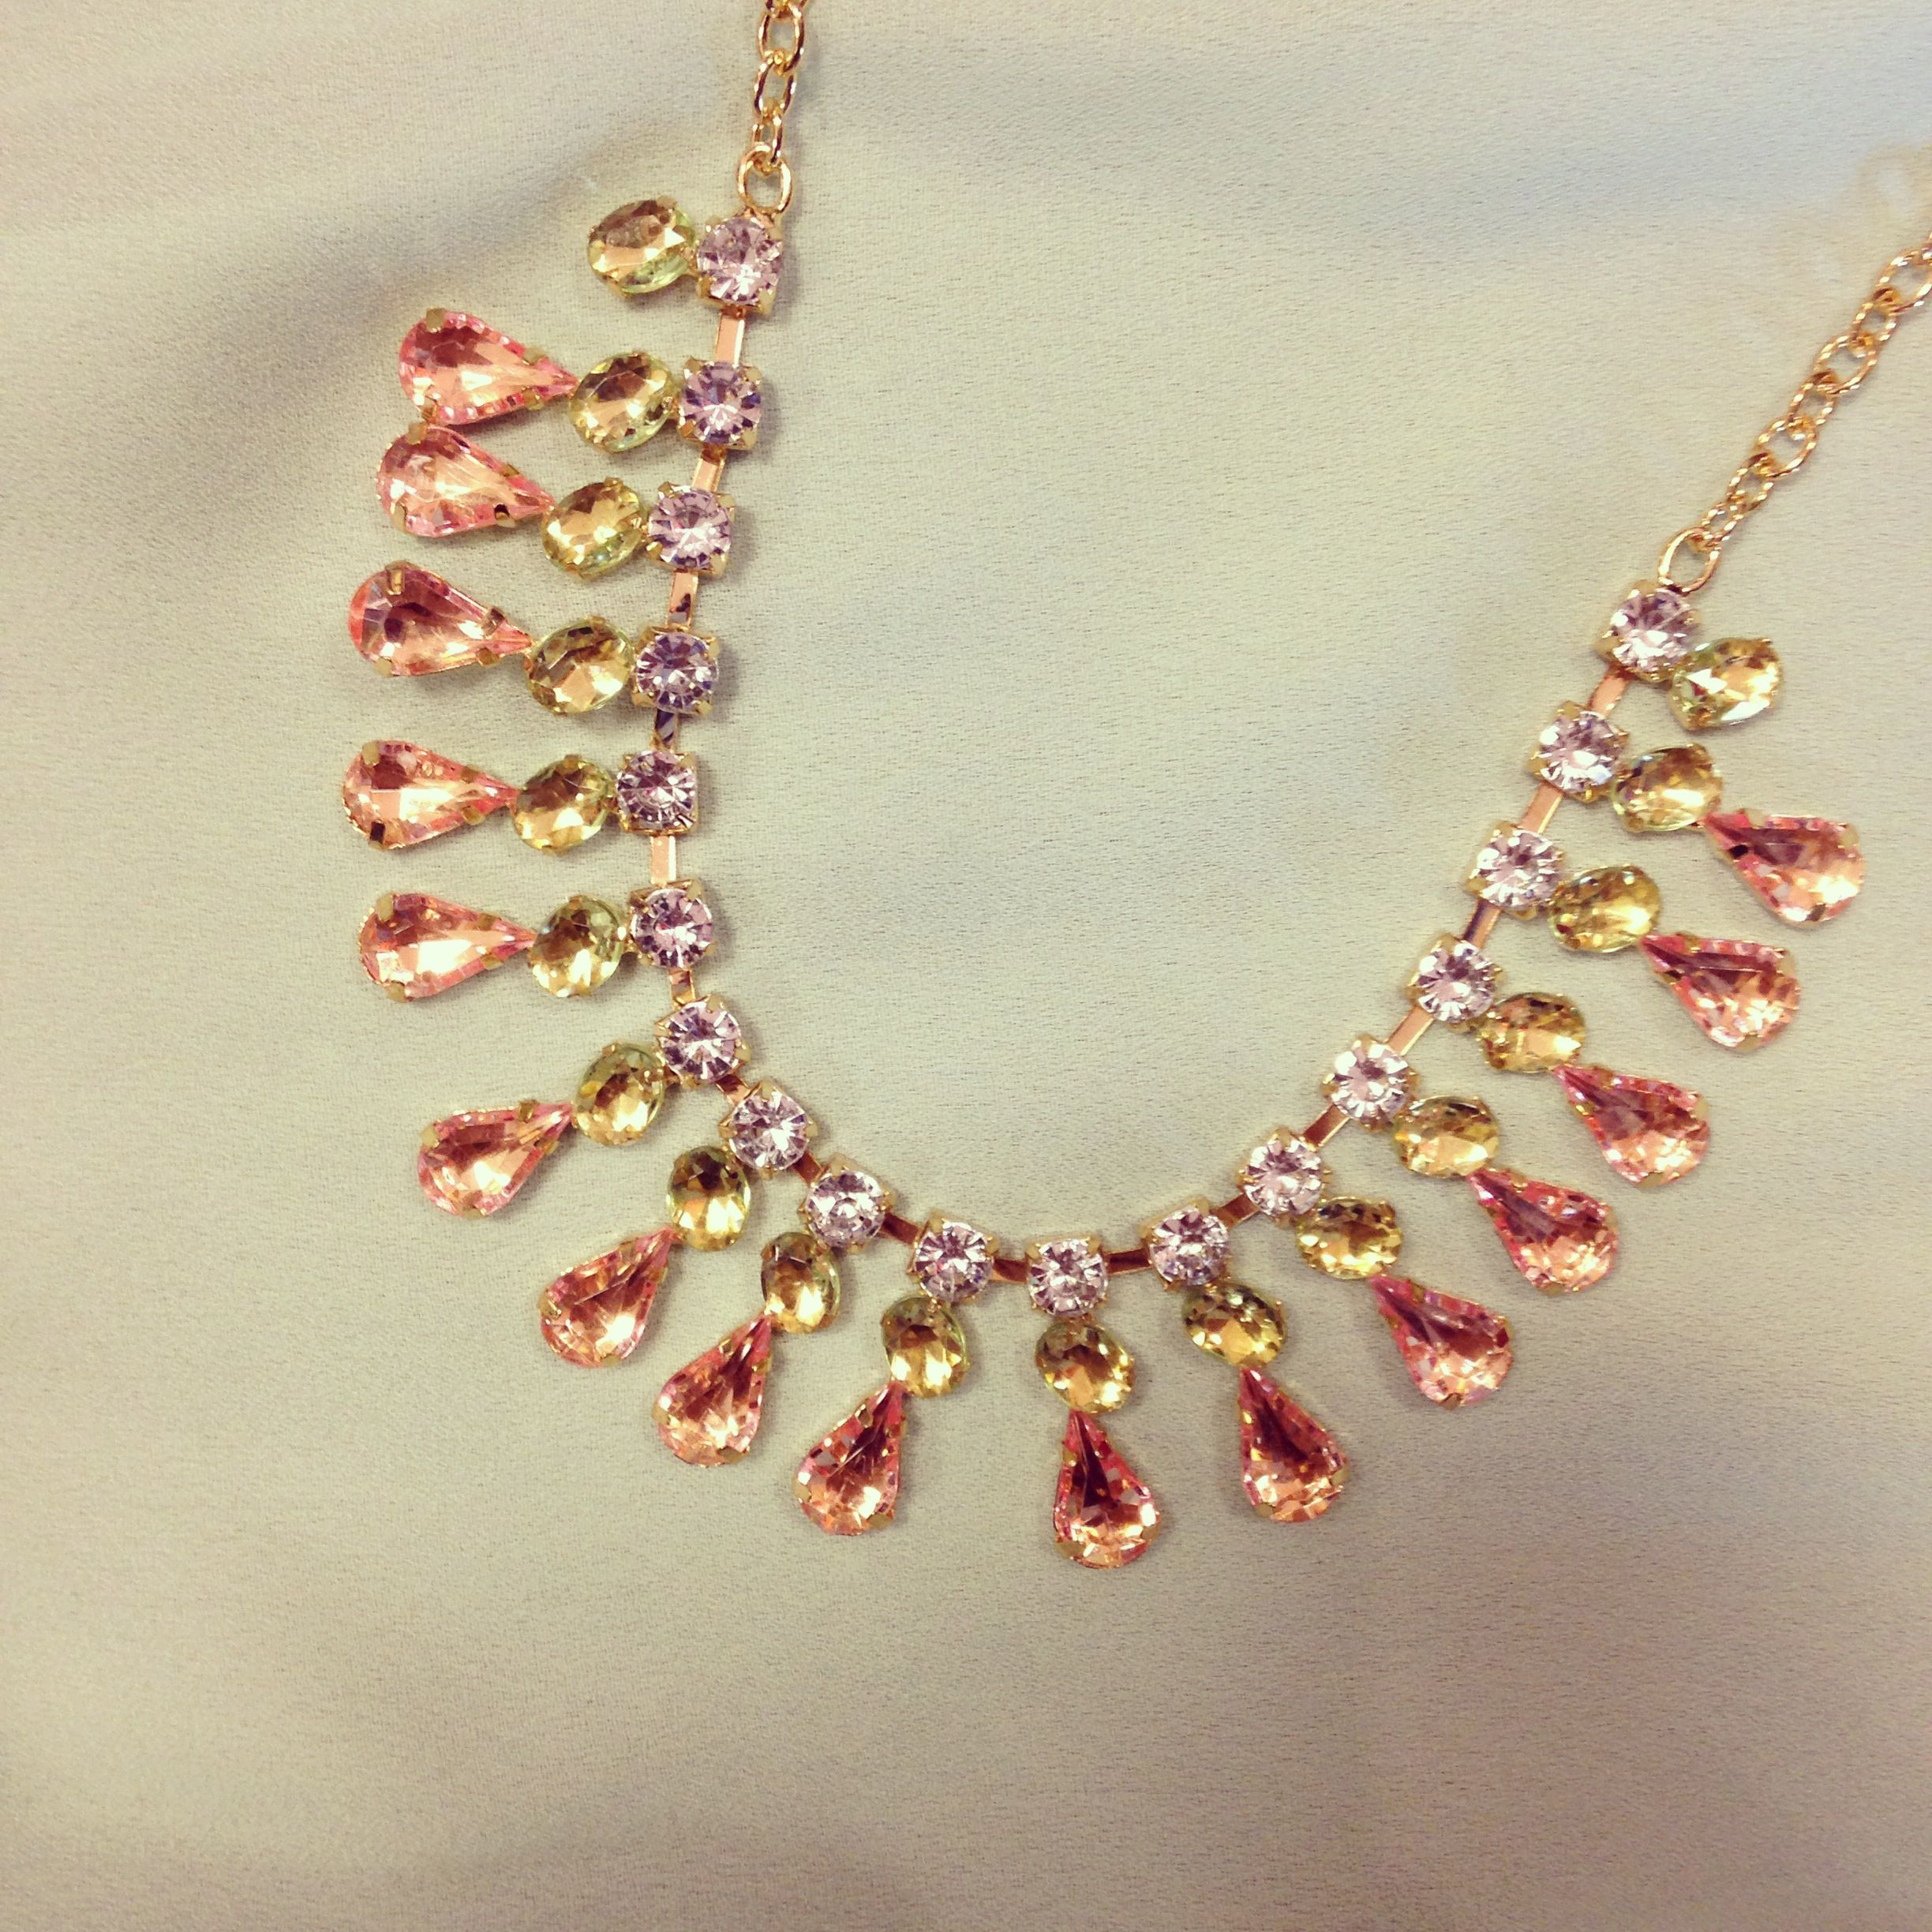 Kohls Jewelry Box Brilliant Lighten Up Your Look With This Candie's Necklace #shine #sparkle